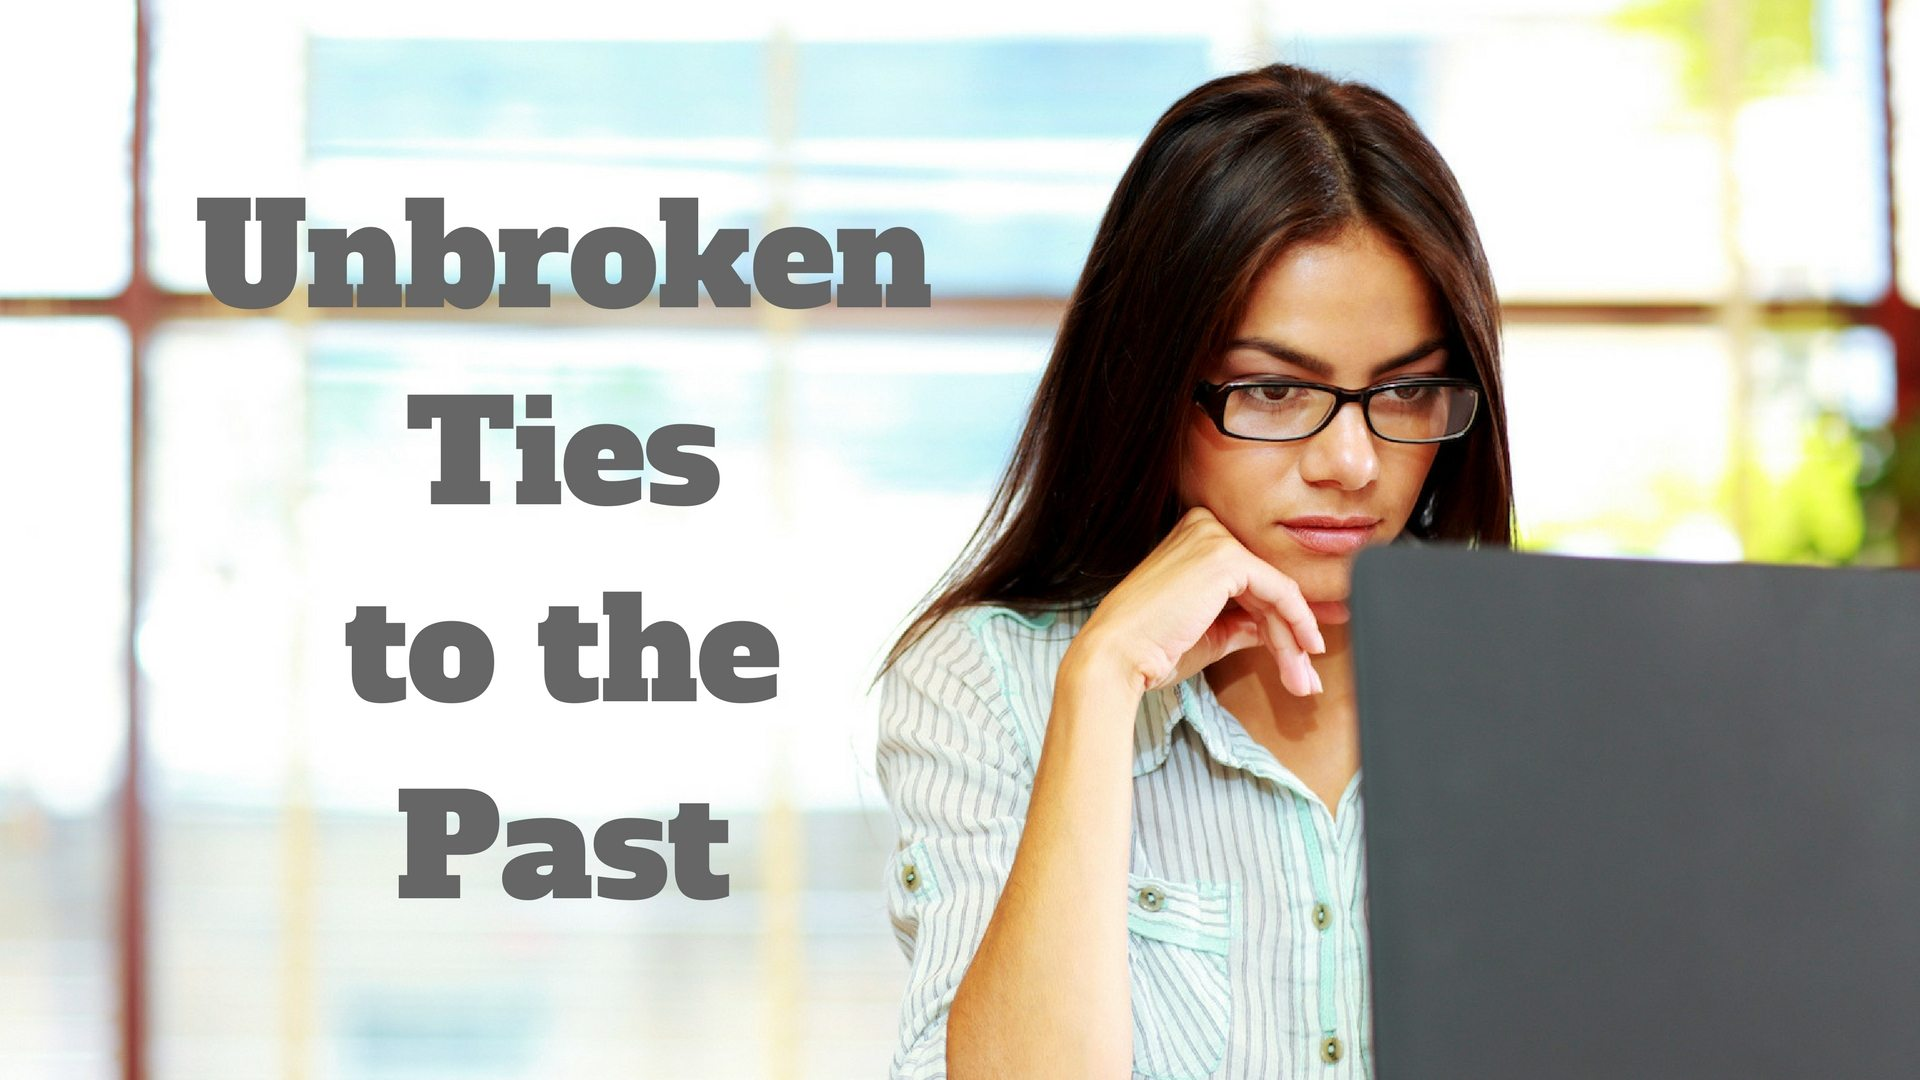 Unbroken ties to the past Graphic stock 0o1a2927-880 copy